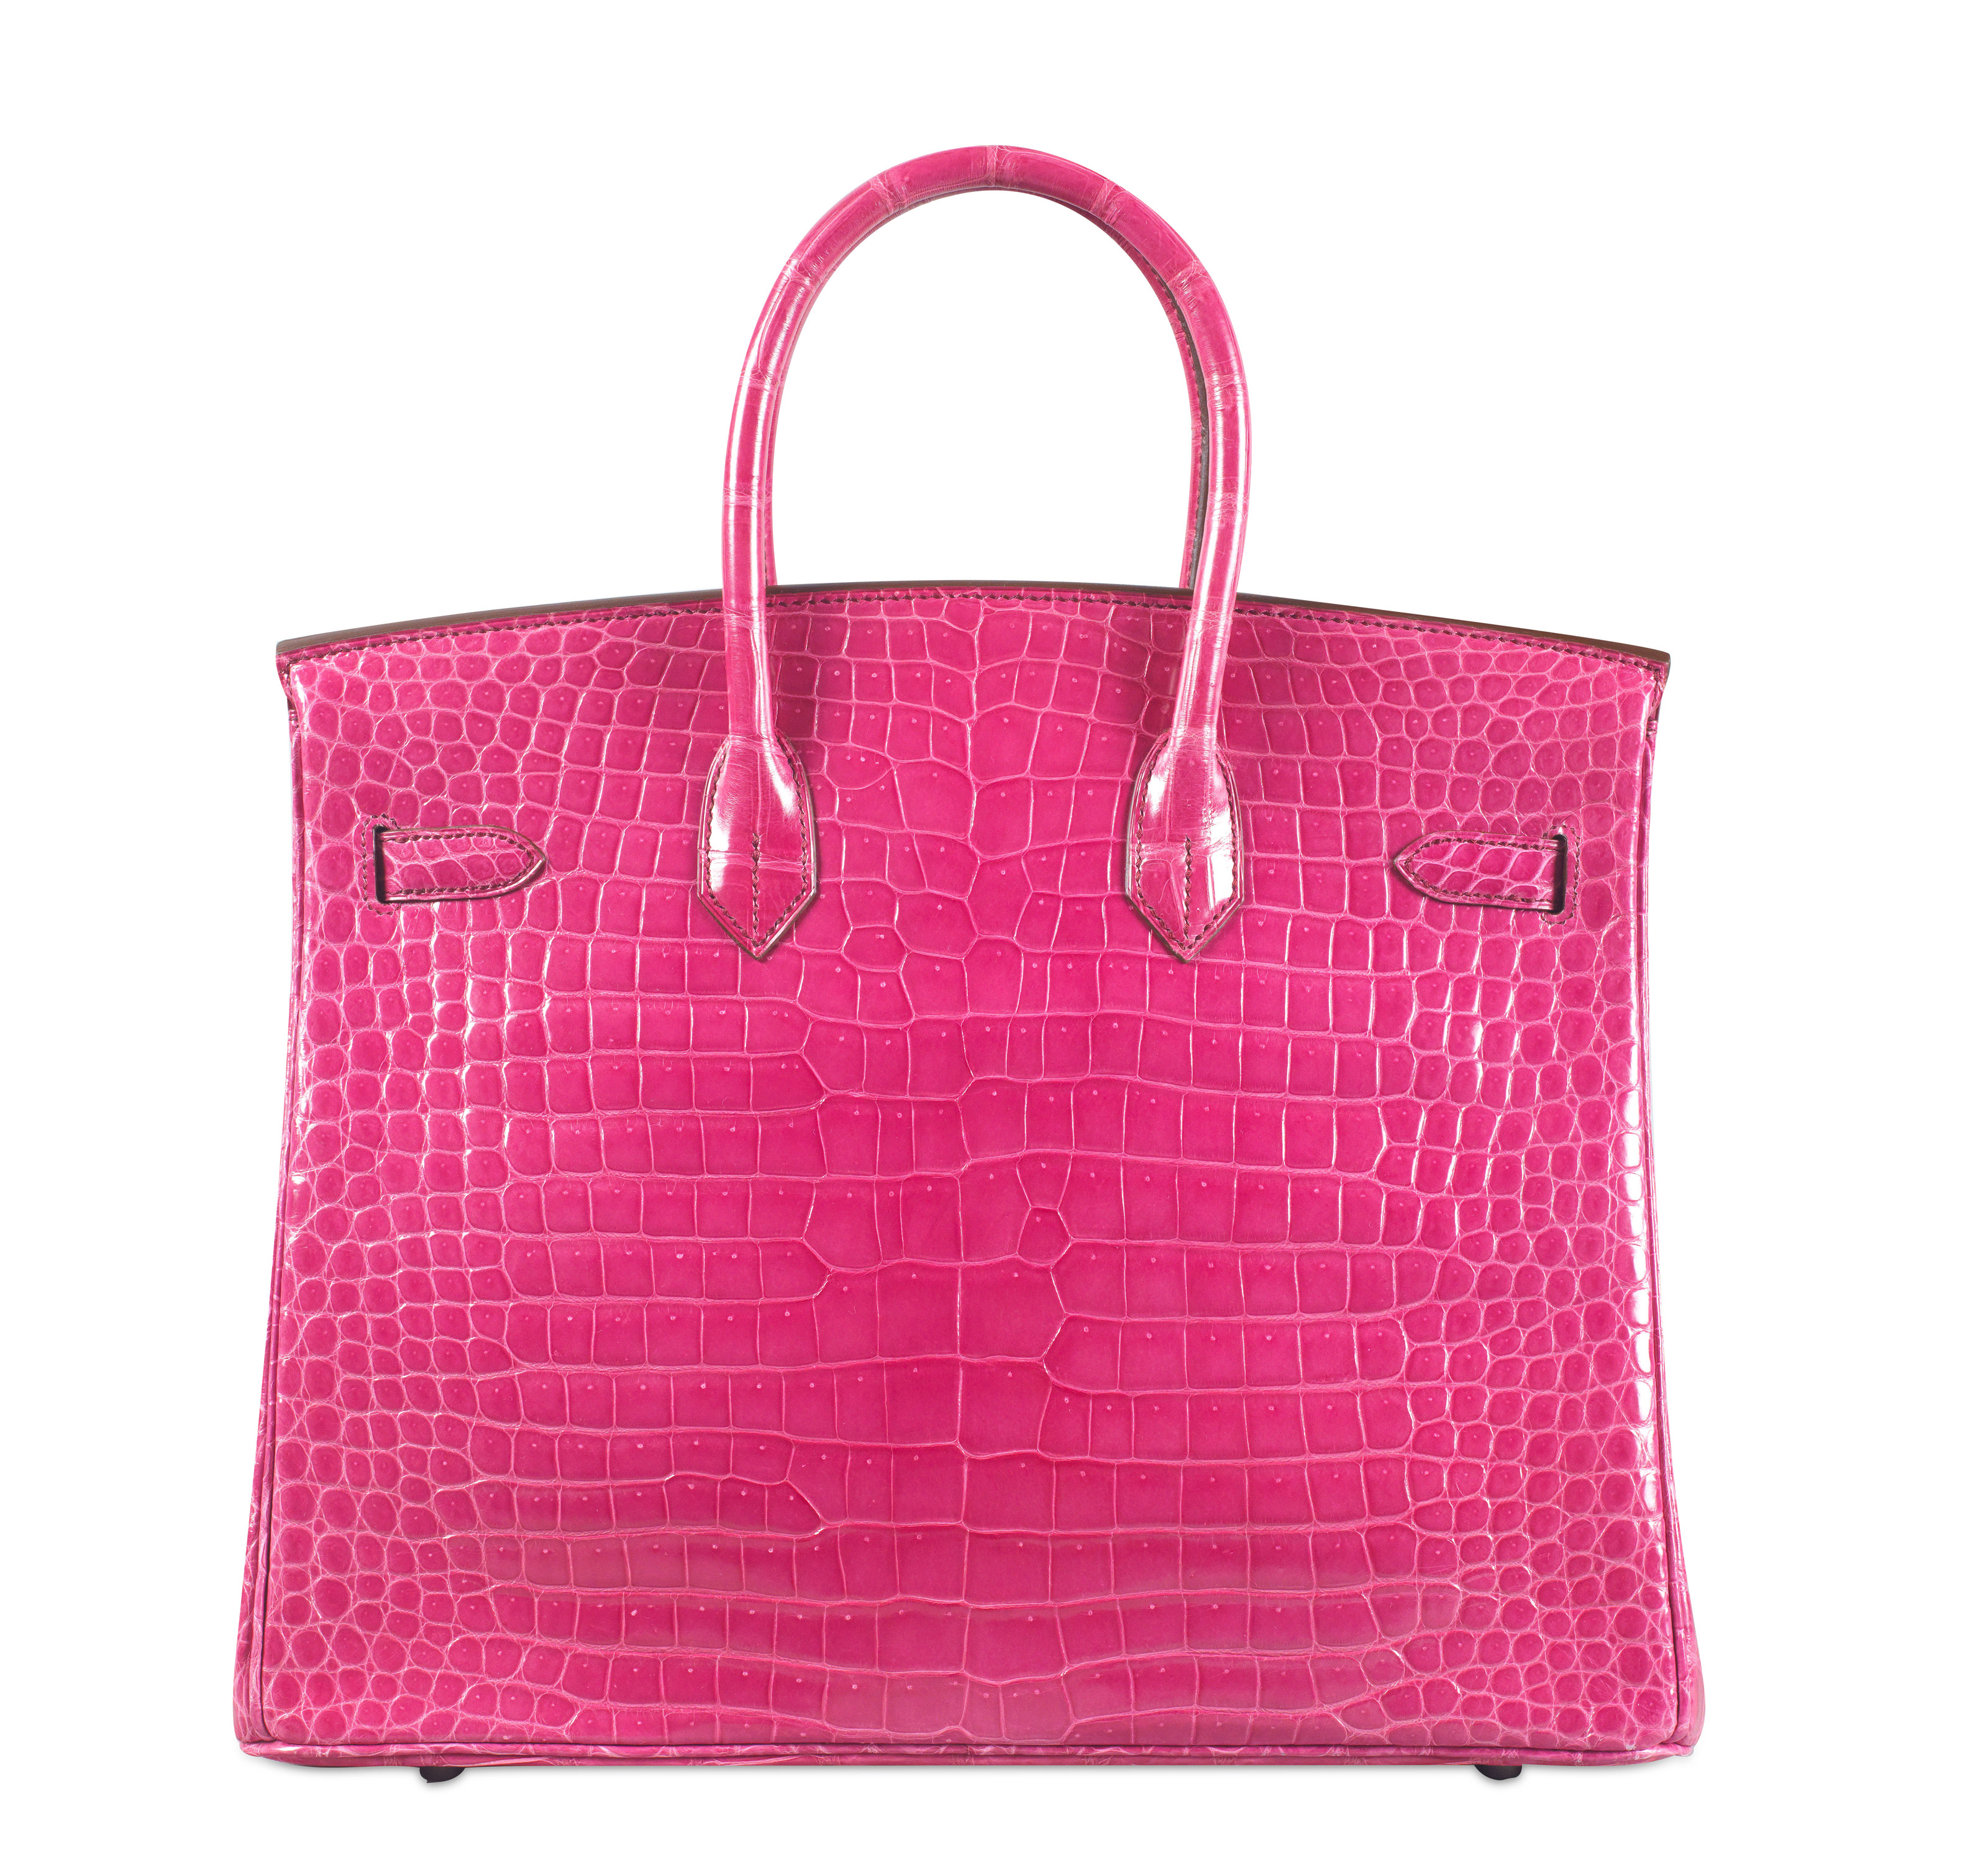 AN EXCEPTIONAL SHINY FUCHSIA POROSUS CROCODILE DIAMOND BIRKIN 35 WITH 18K WHITE GOLD & DIAMOND HARDWARE